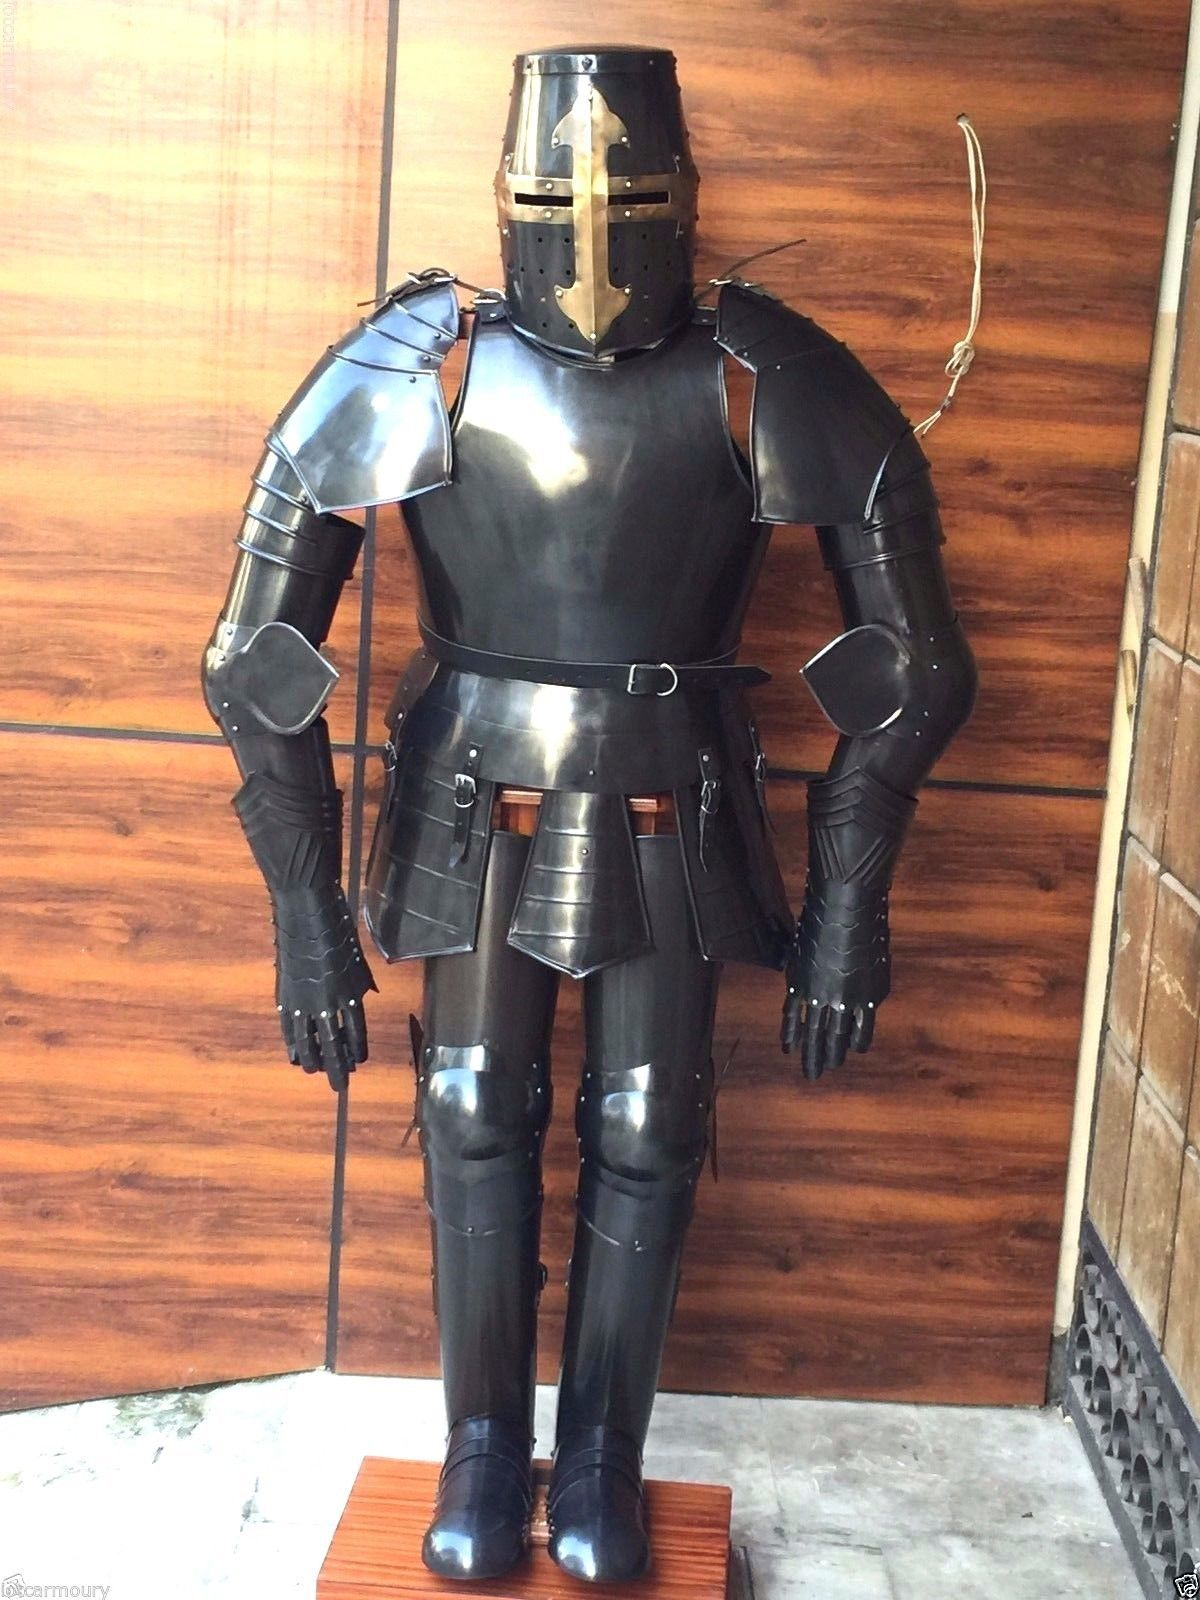 Primary image for NauticalMart Medieval Knight Black Crusader Suit Of Armor